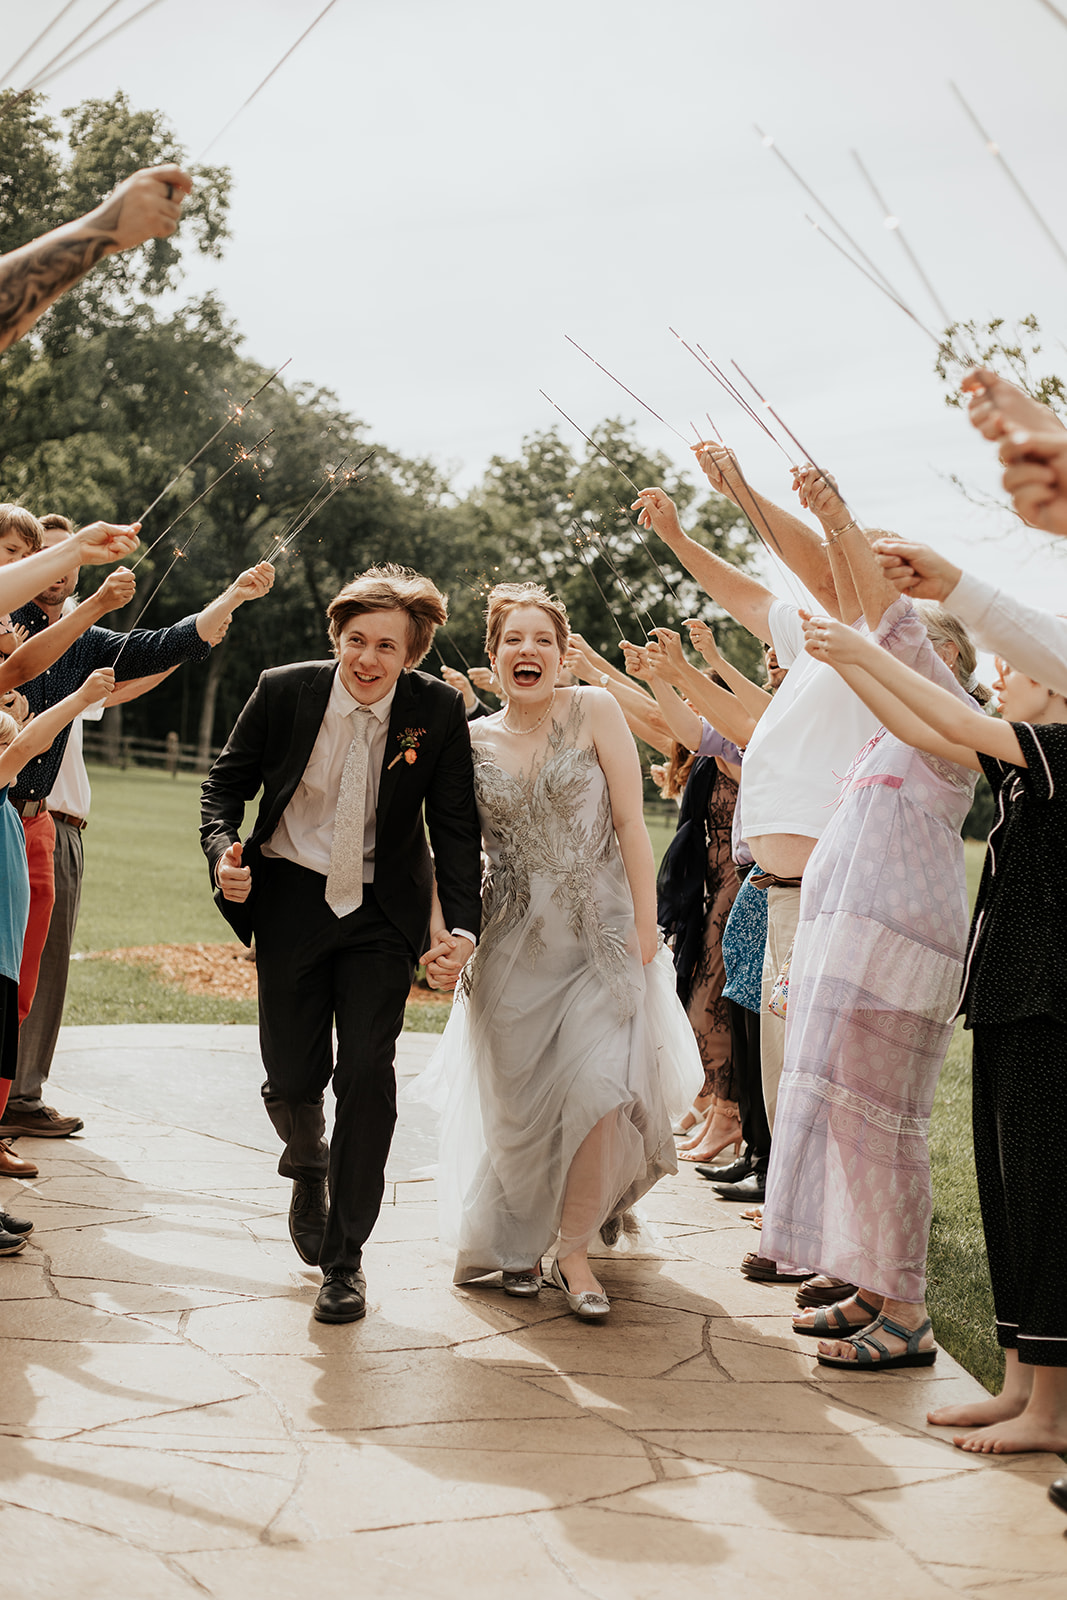 intimate summer wedding in minnesota daytime sparkler exit